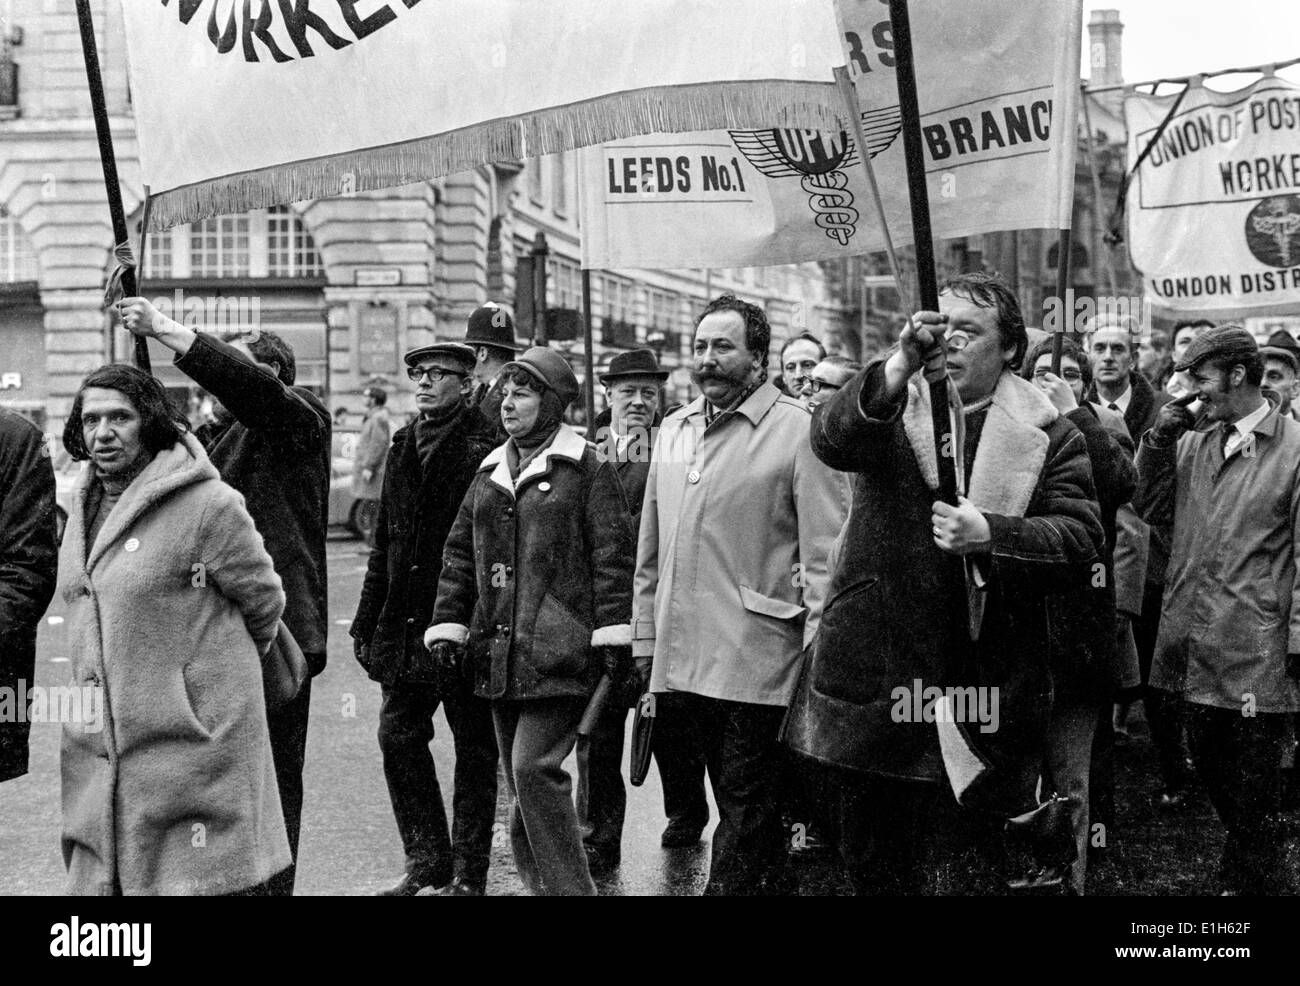 Postal workers striking in solidarity with coal miners, marching in London, March 1972 - Stock Image